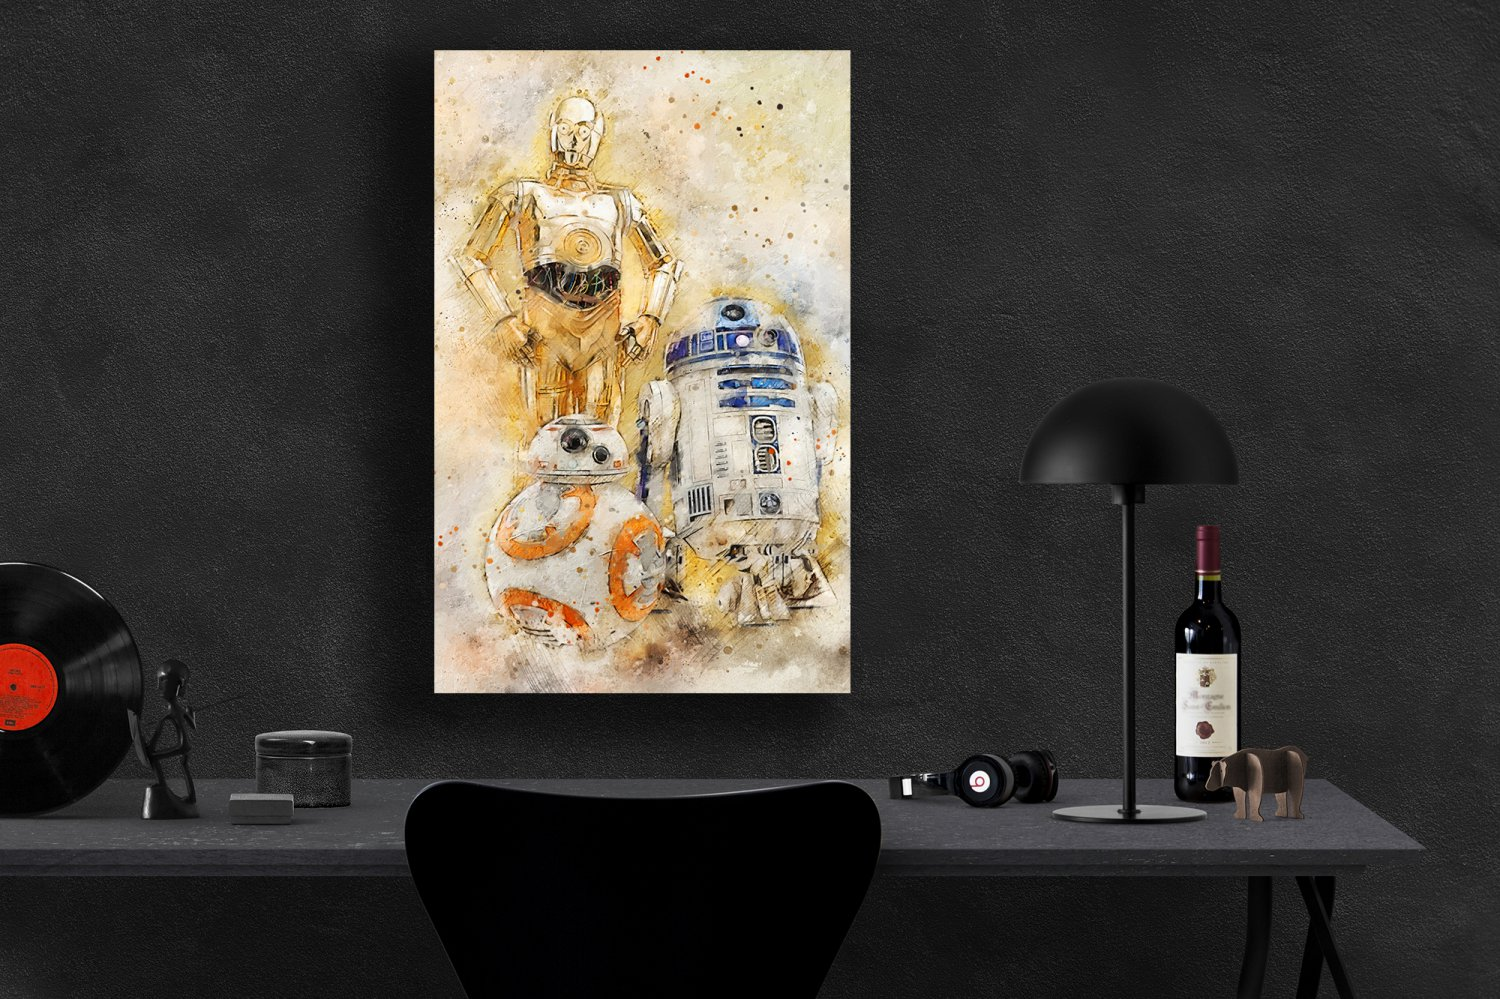 Star Wars, BB-8, C-3PO, R2-D2, Movie  13x19 inches Poster Print